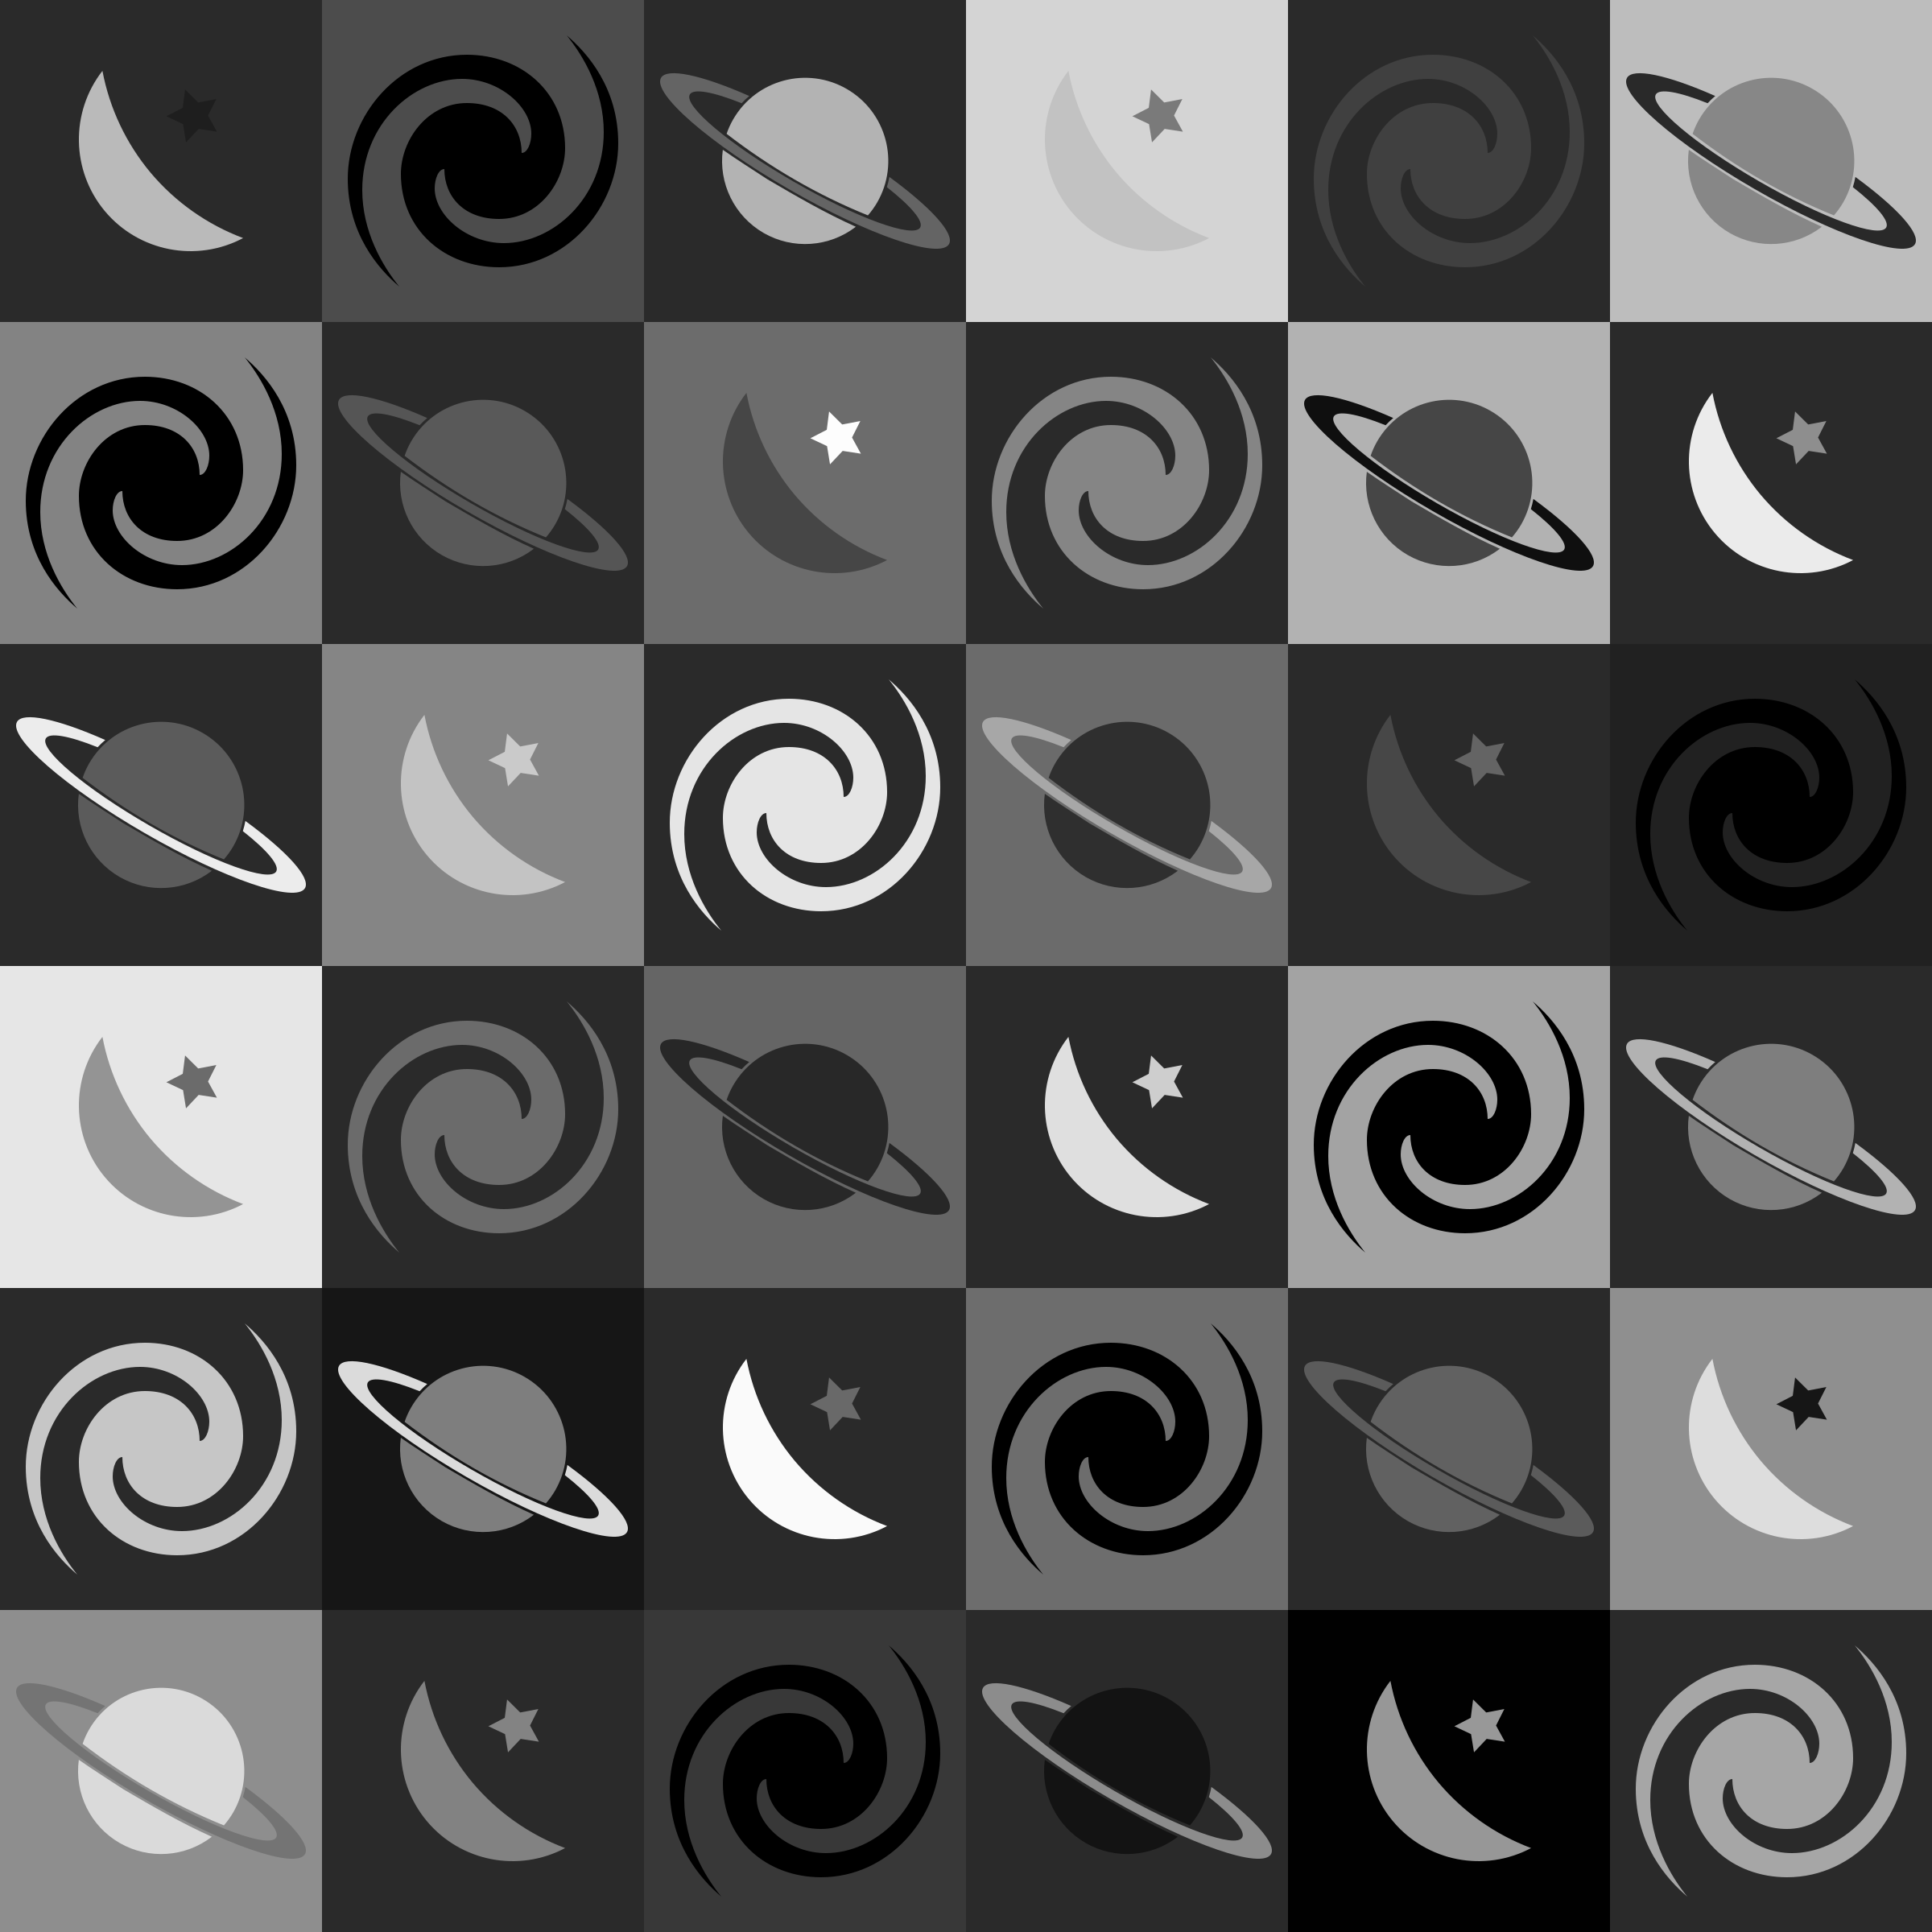 Greyscale clipart #6, Download drawings